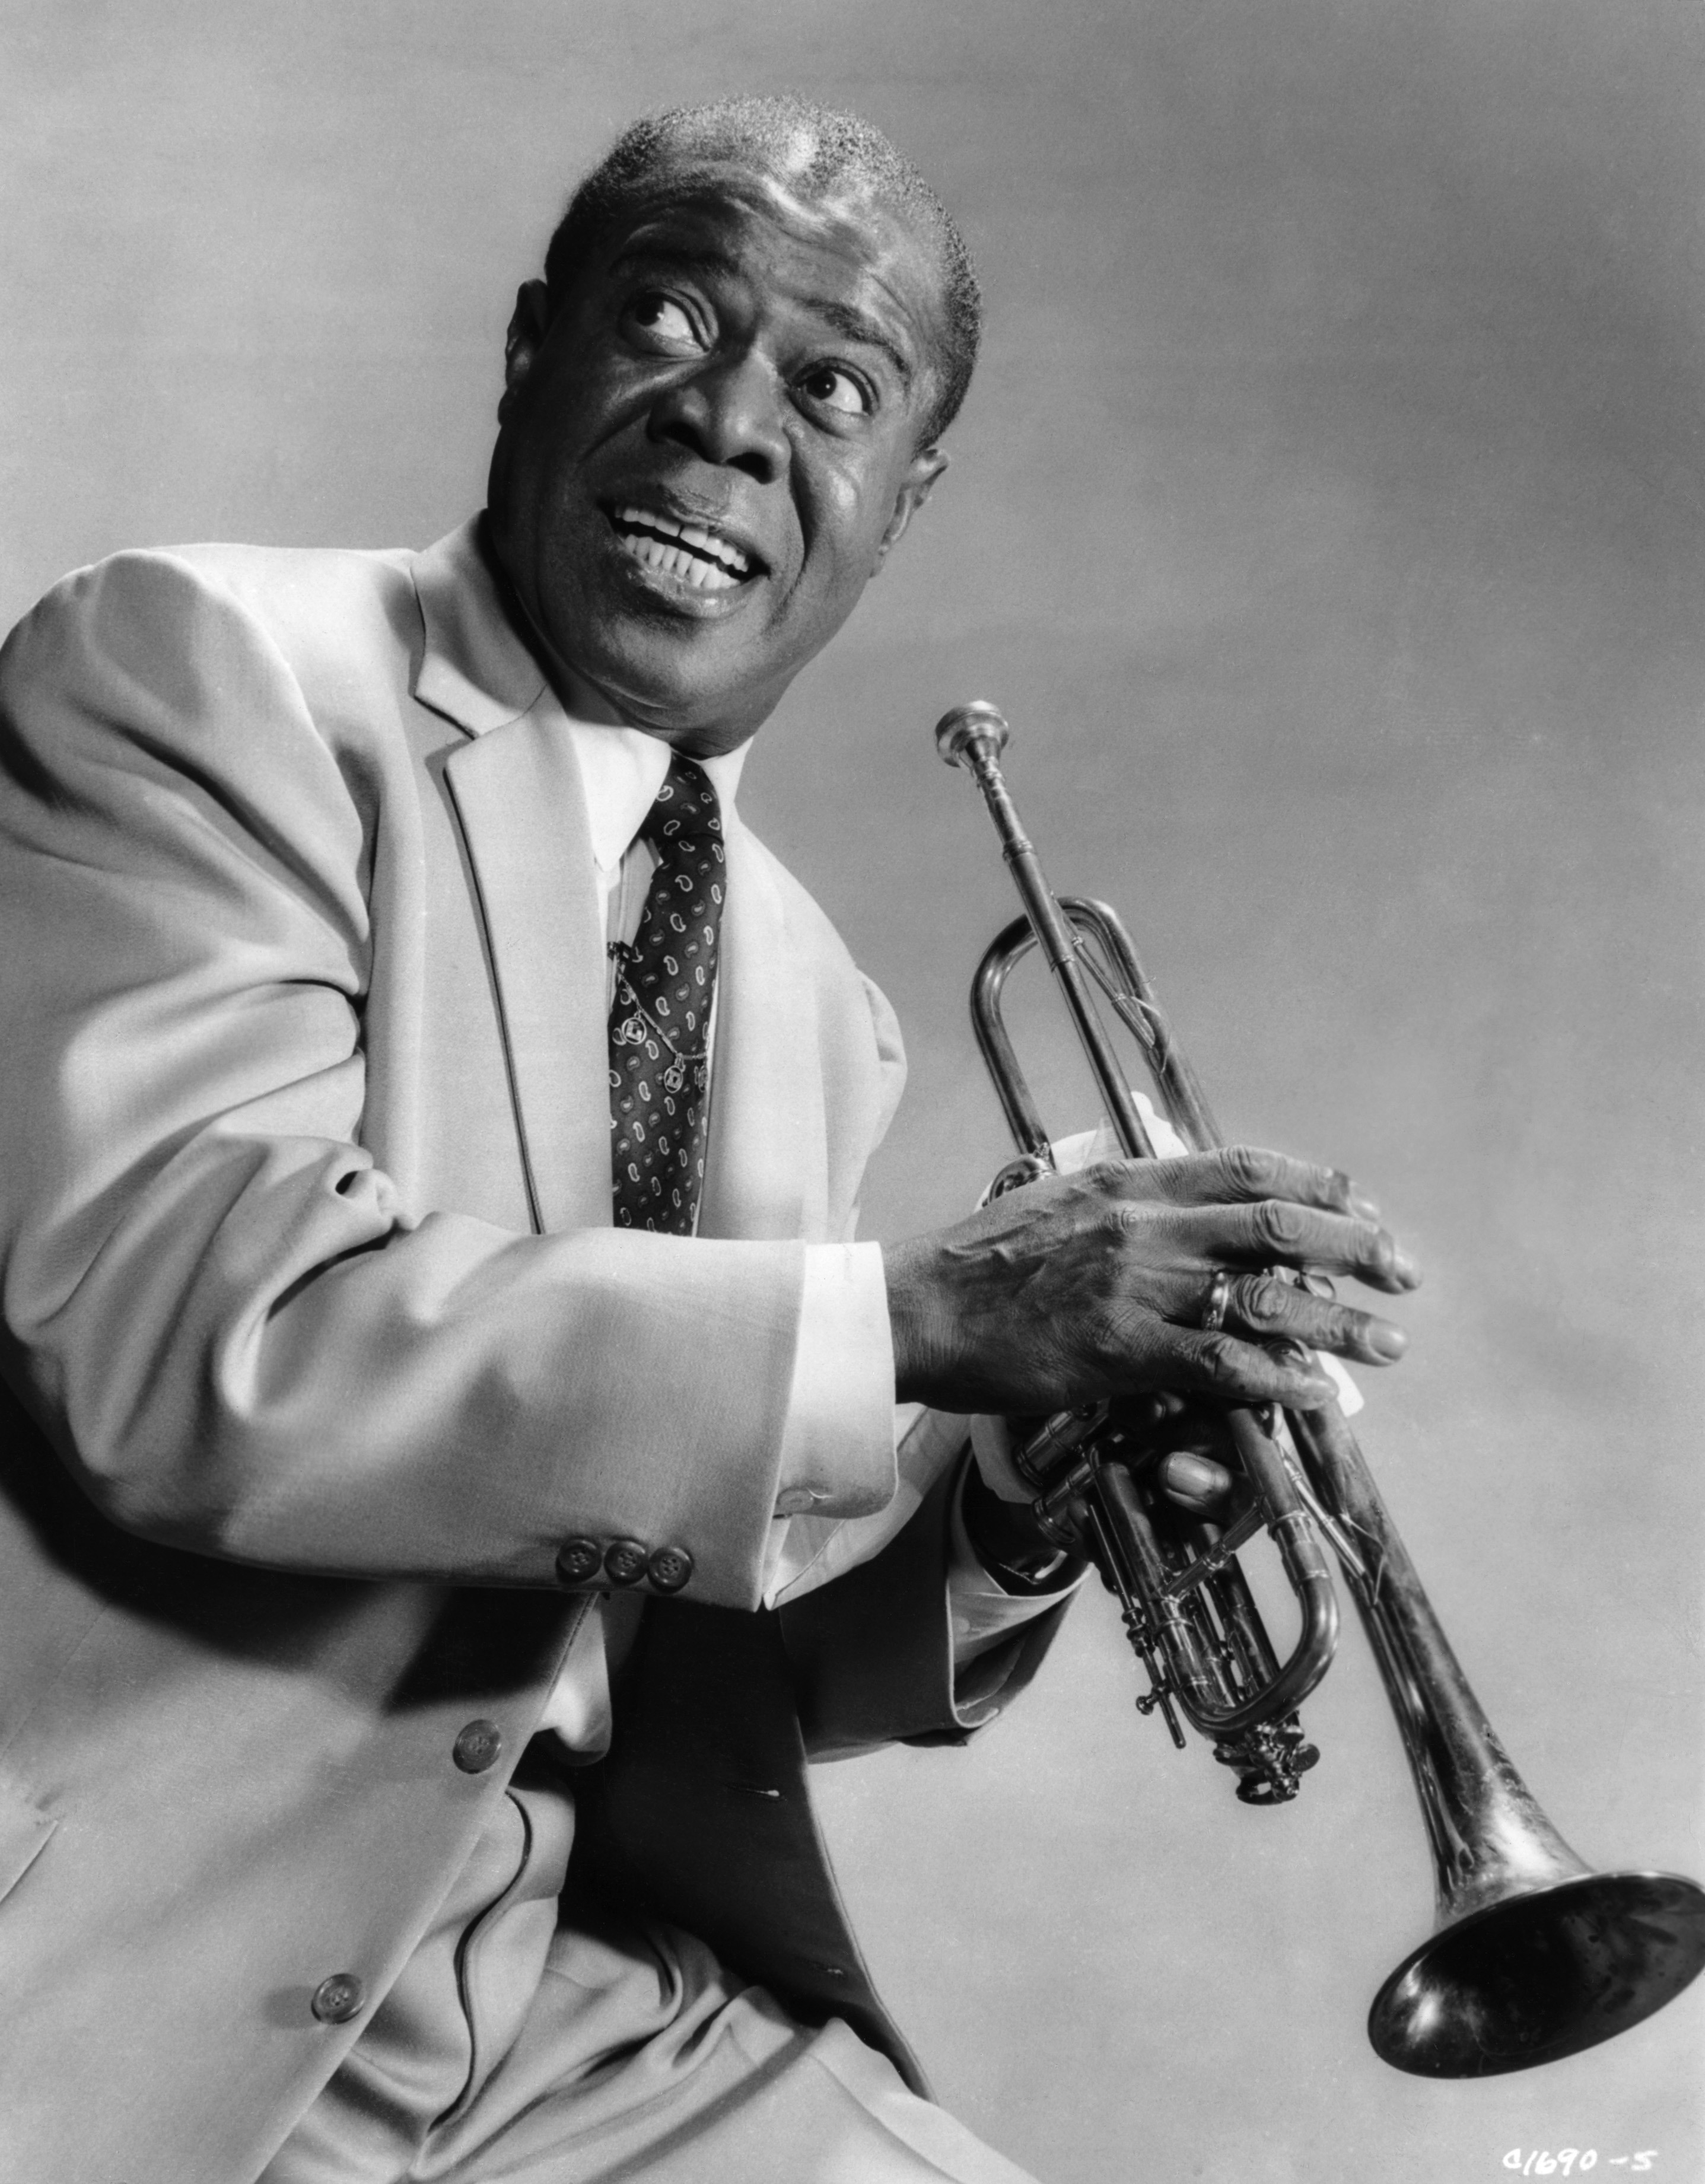 louis armstrong Celebrity HD Wallpaper